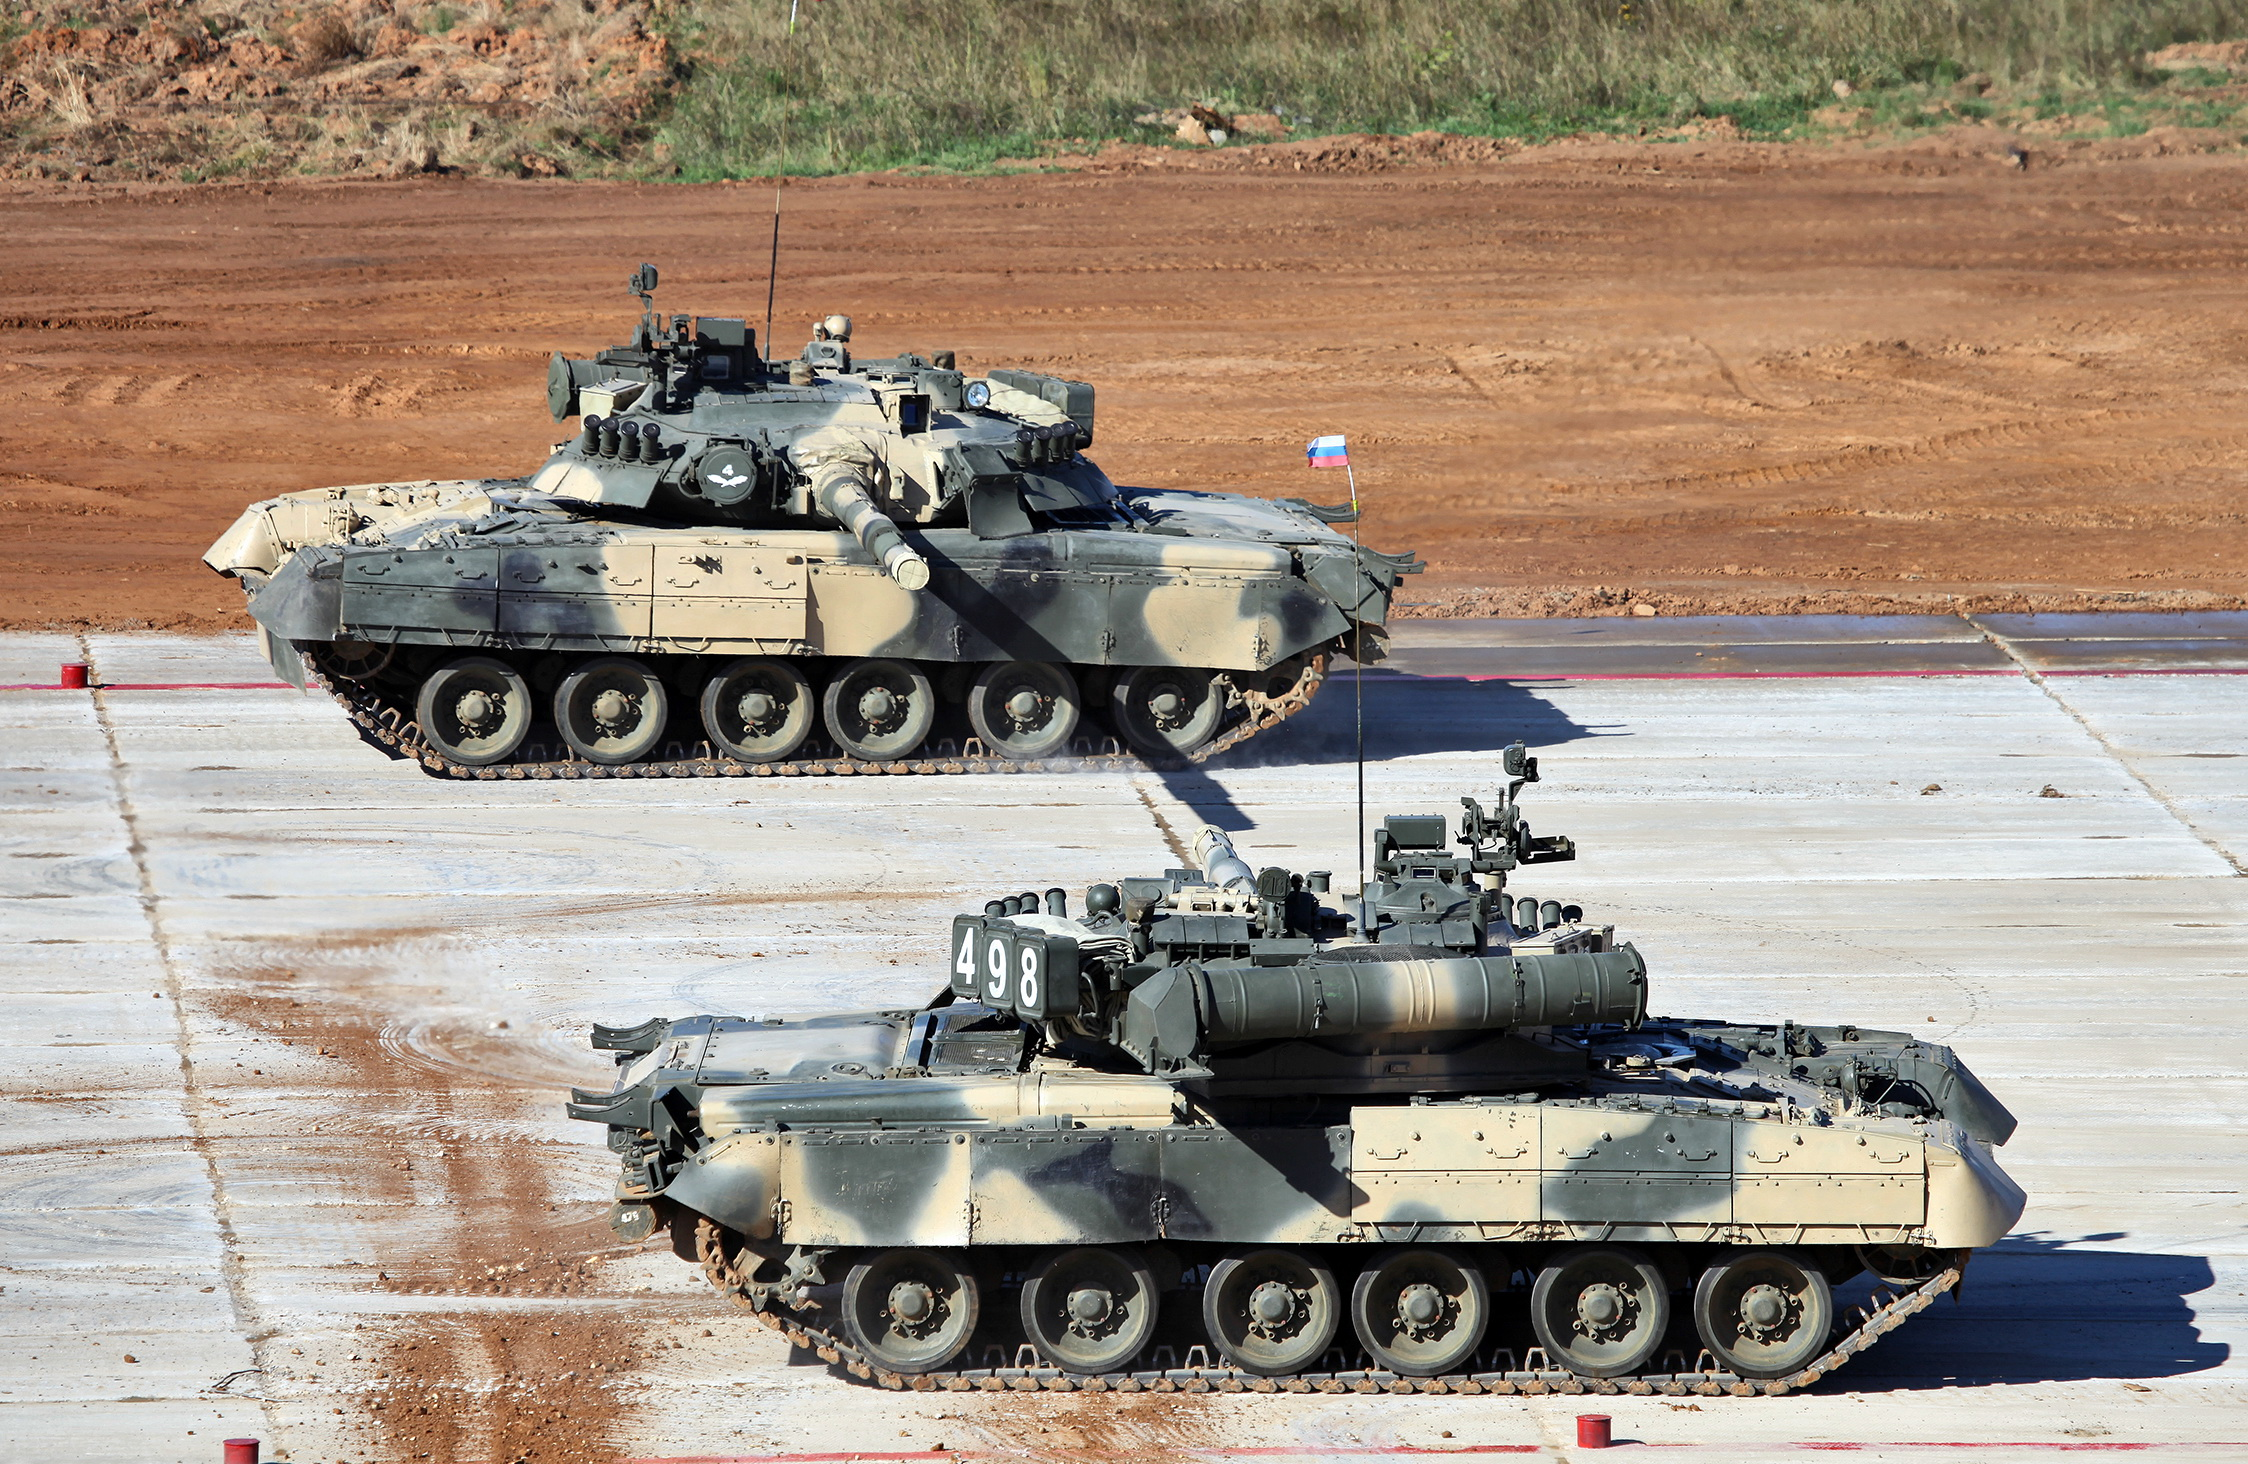 http://upload.wikimedia.org/wikipedia/commons/6/64/T-80U_-_TankBiathlon2013-15.jpg?uselang=ru